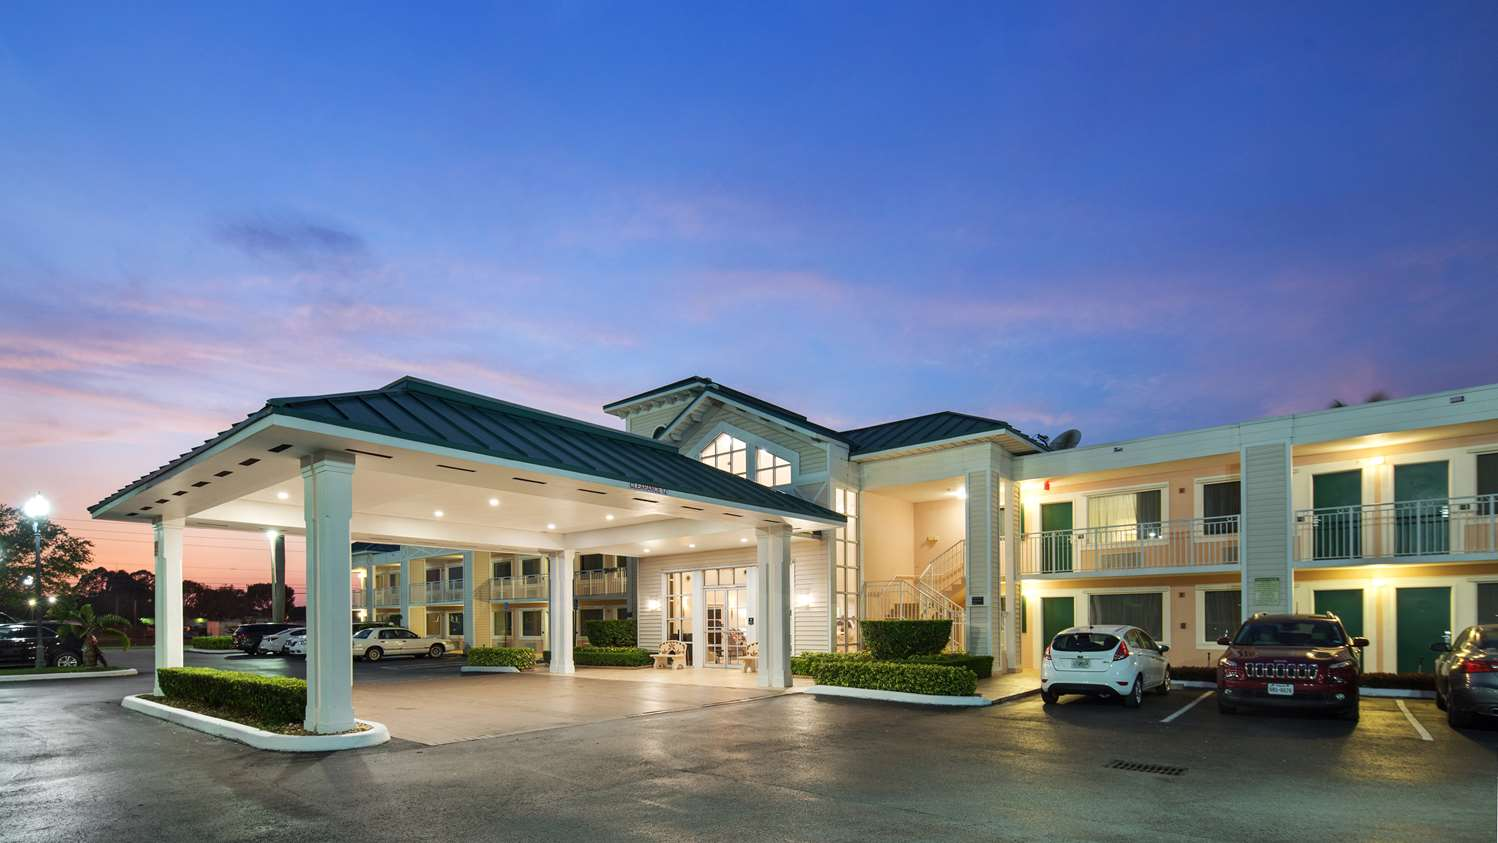 Best Western Motel Florida City